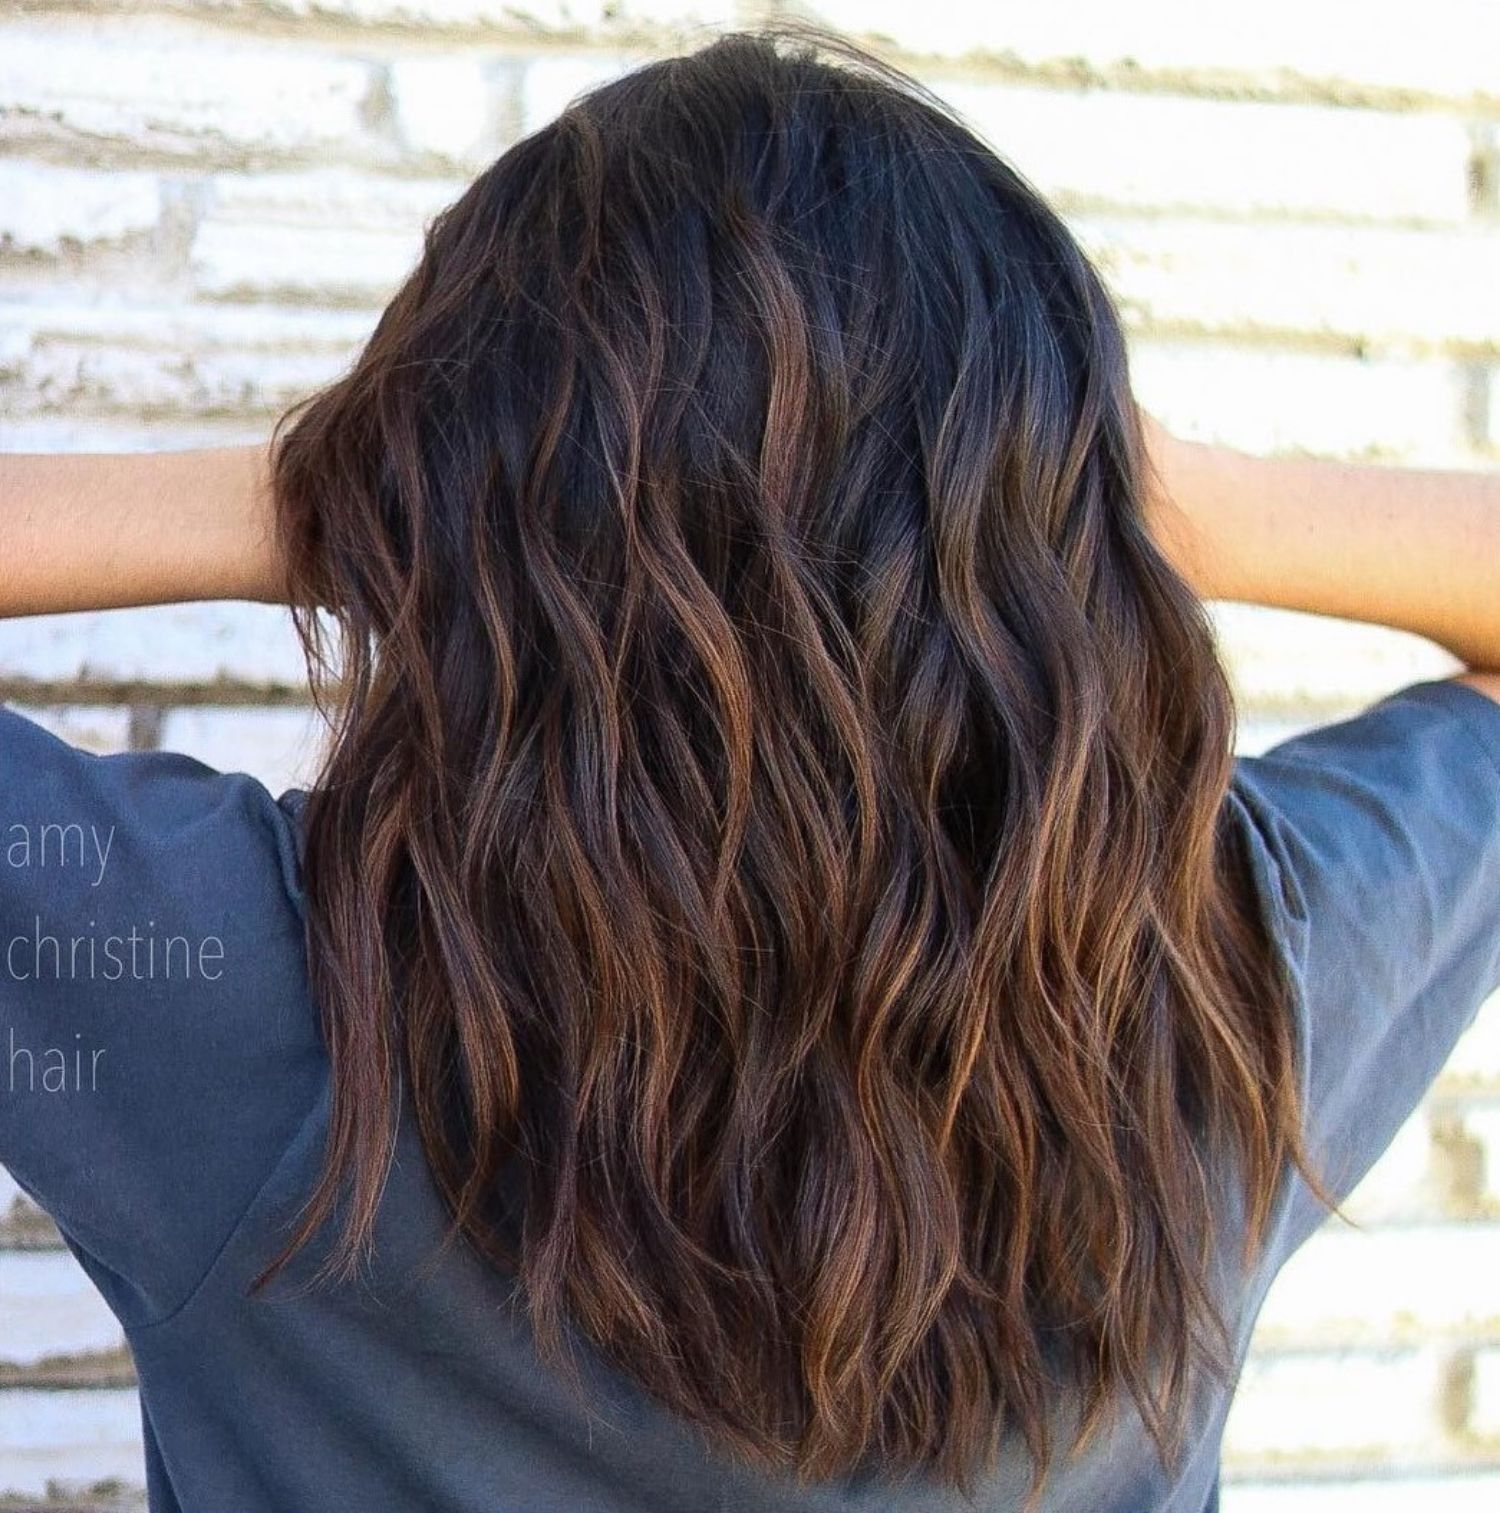 42++ Hairstyles for long thick wavy hair ideas